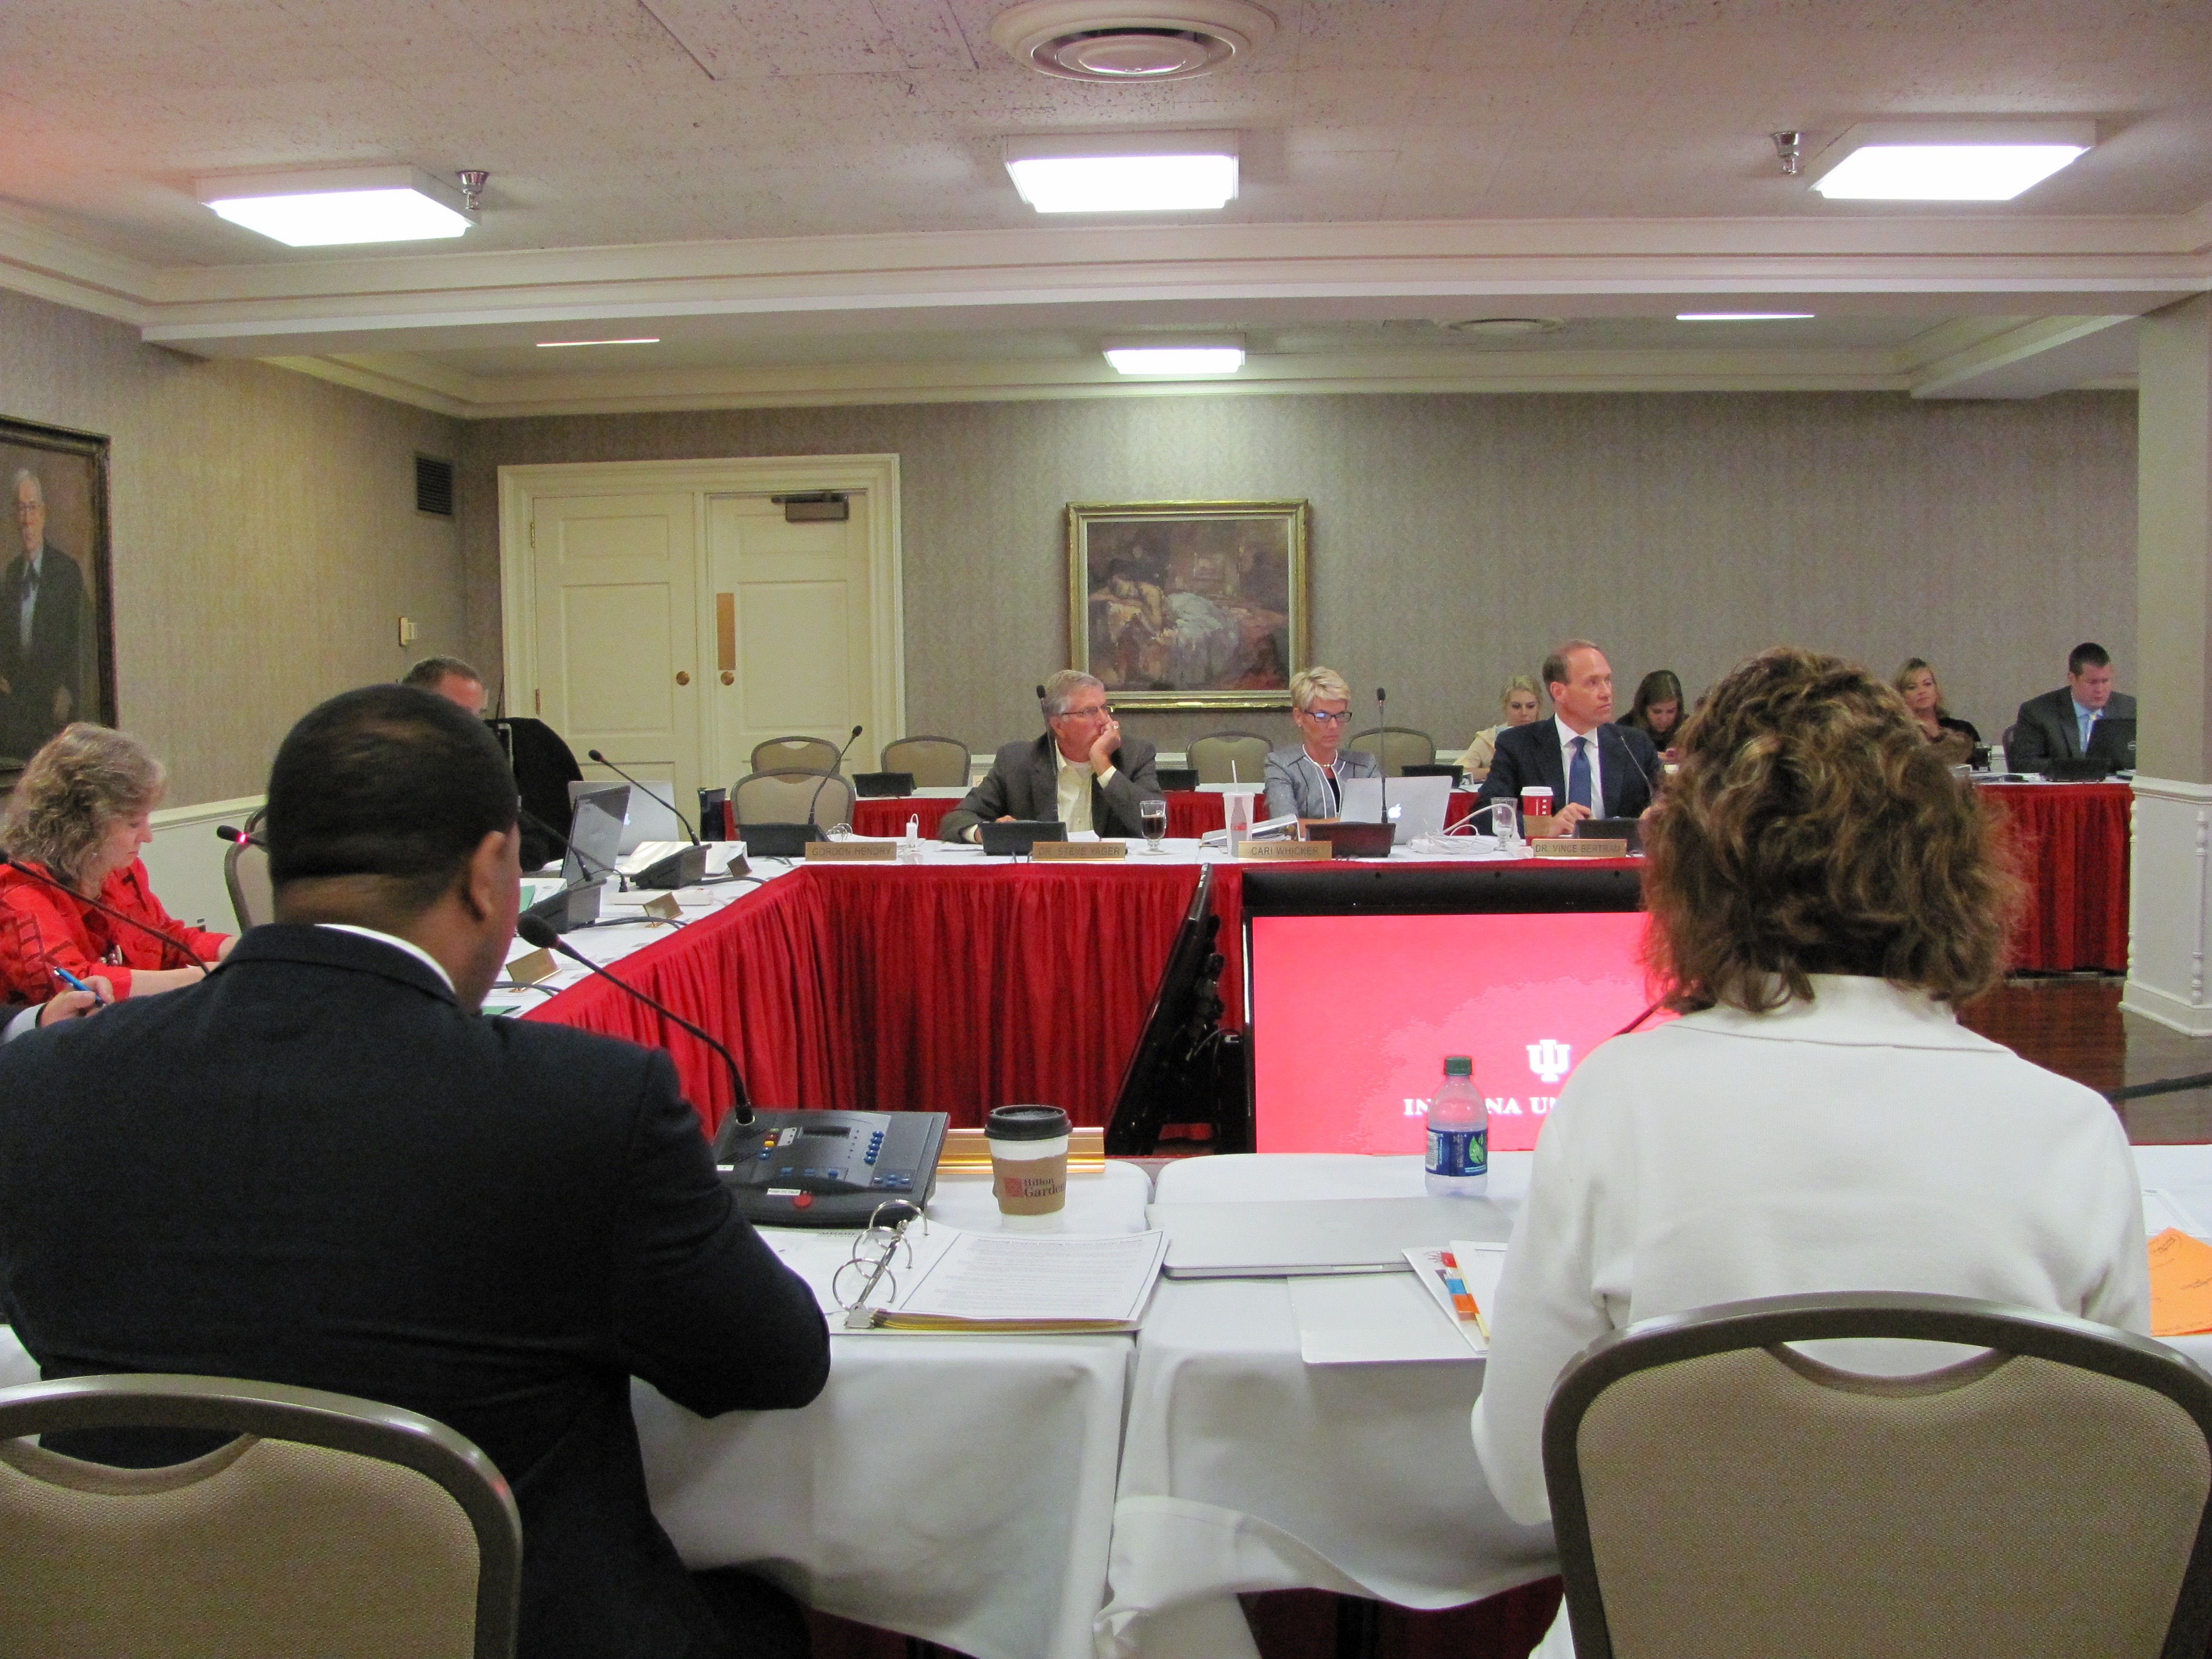 The state board is set to approve final 2015 A-F school grades at its January meeting next week.